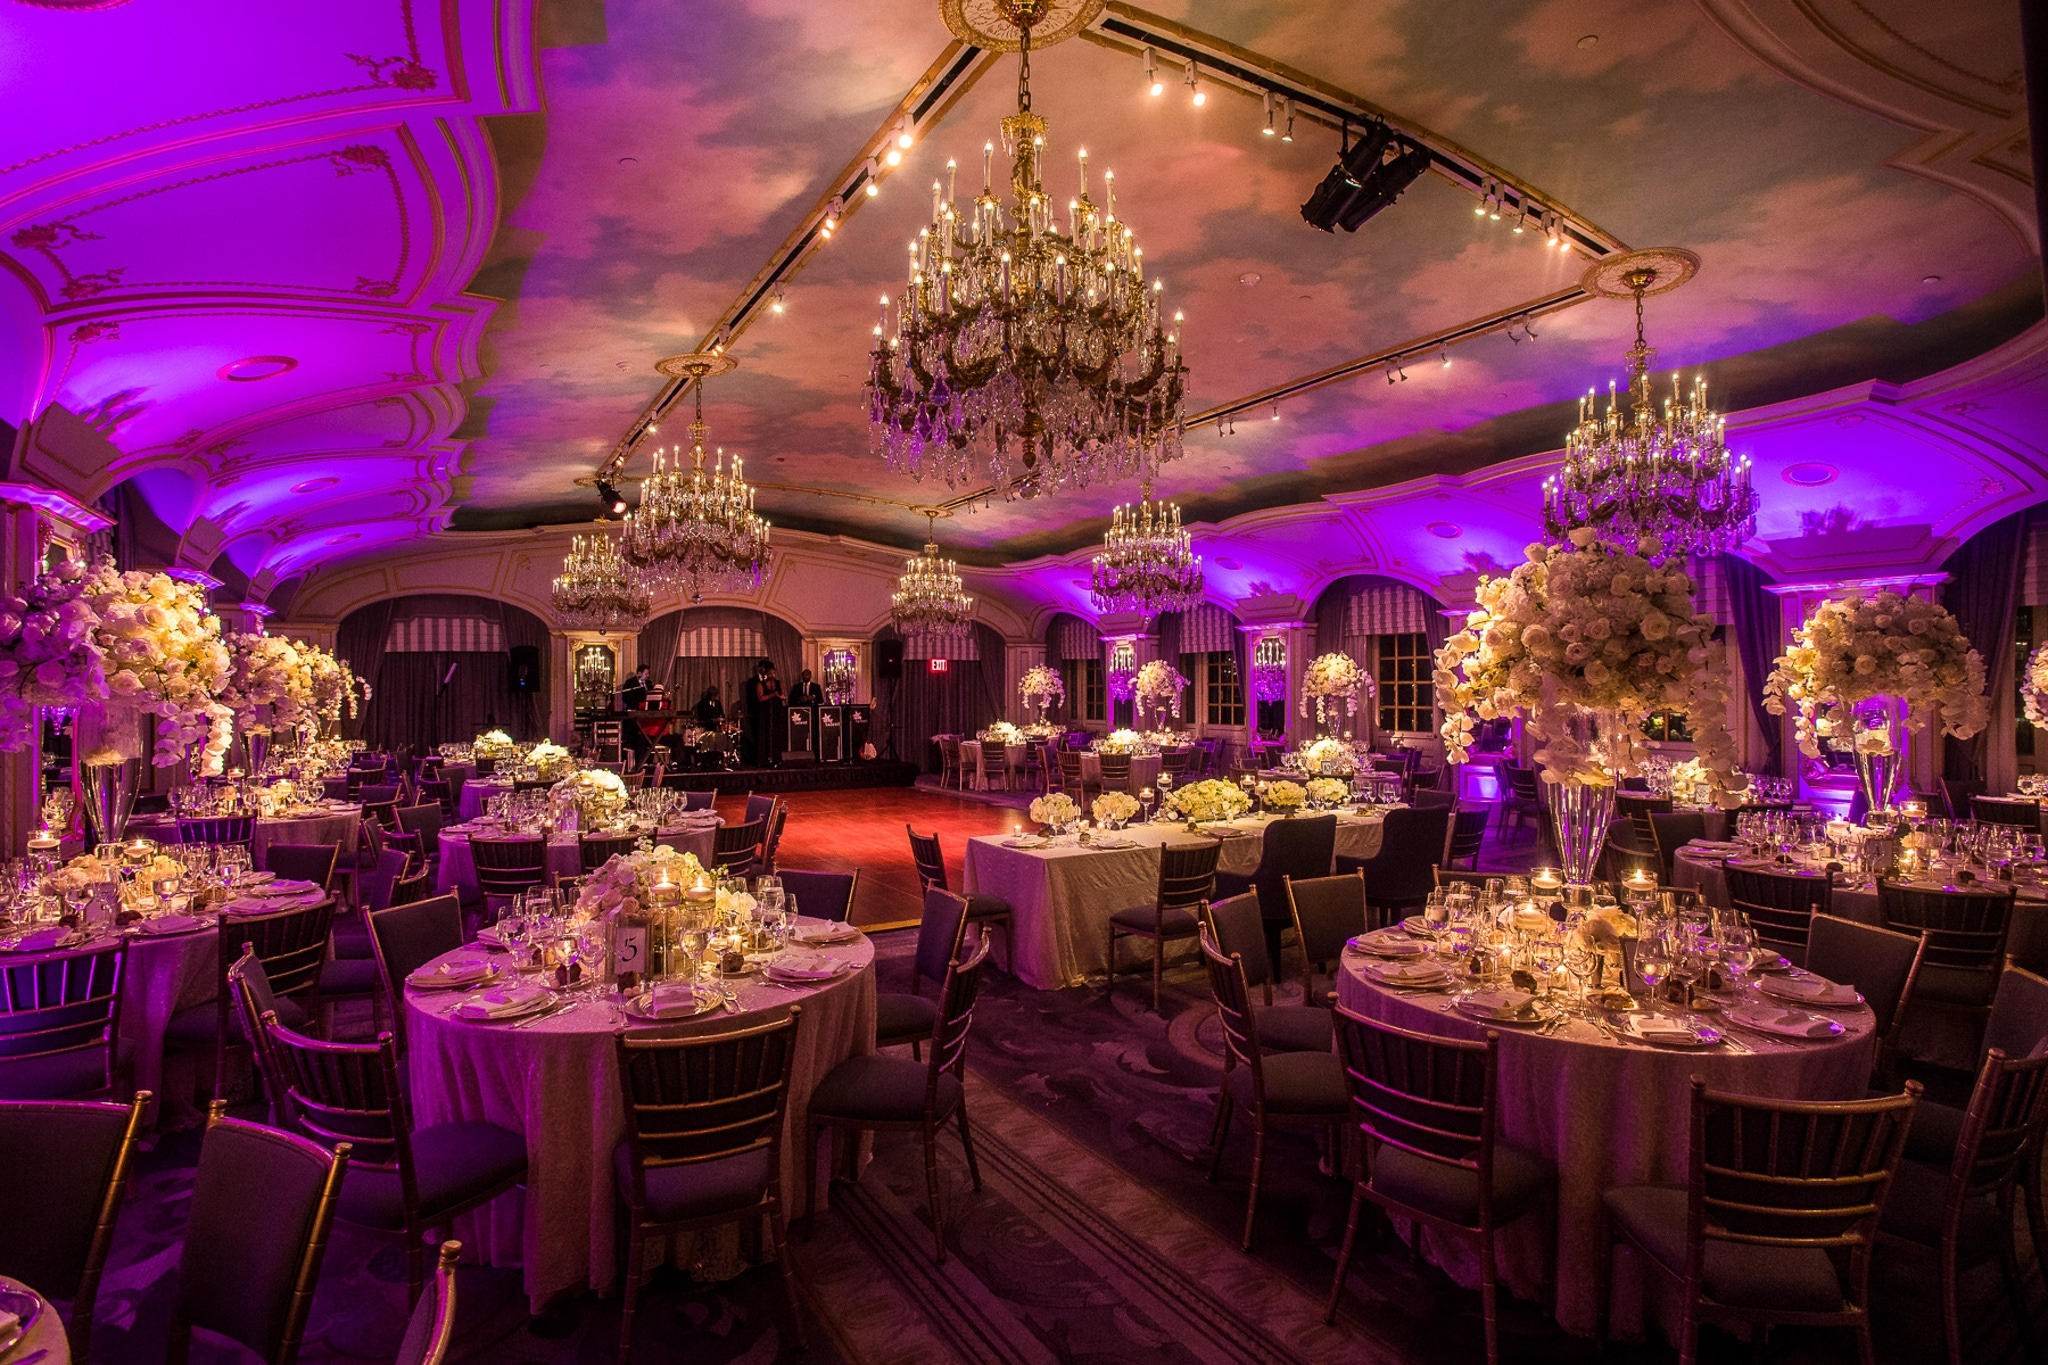 The St. Regis New York ballroom